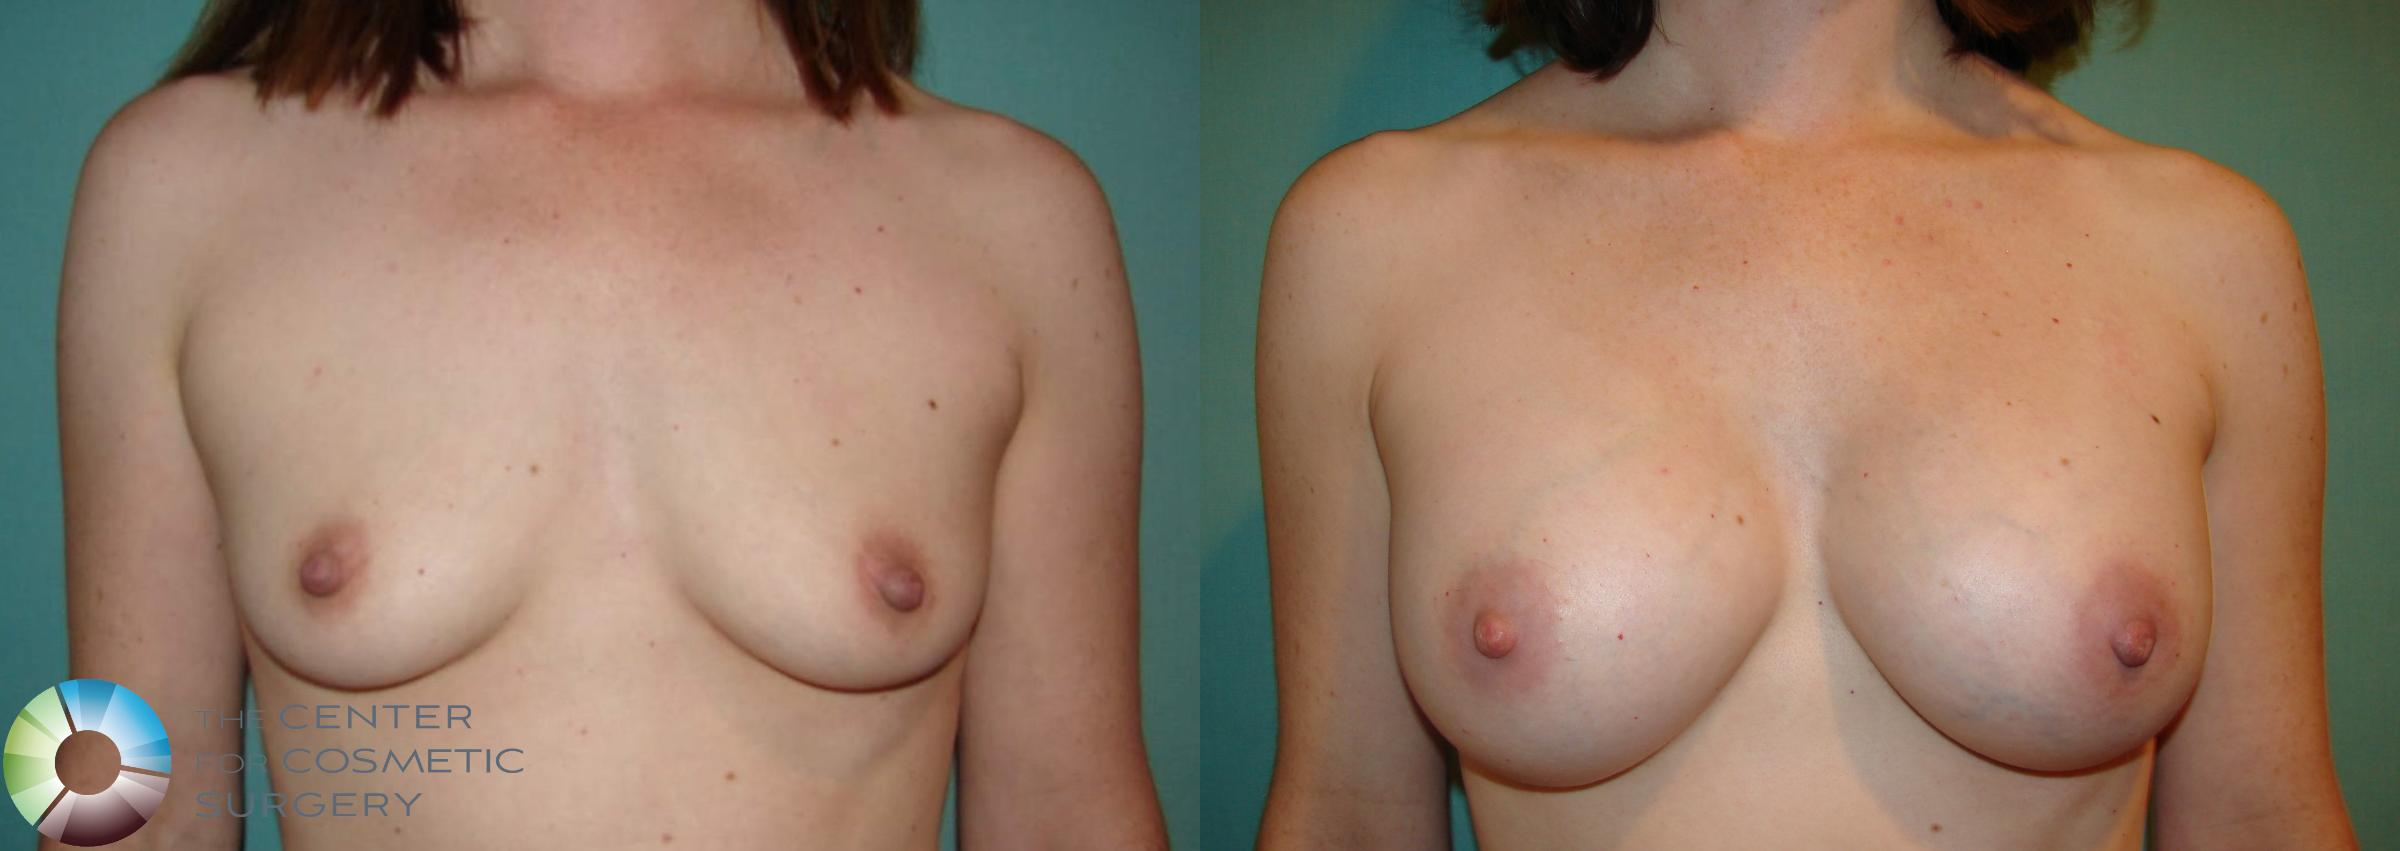 Breast Augmentation Case 529 Before & After View #2 | Golden, CO | The Center for Cosmetic Surgery